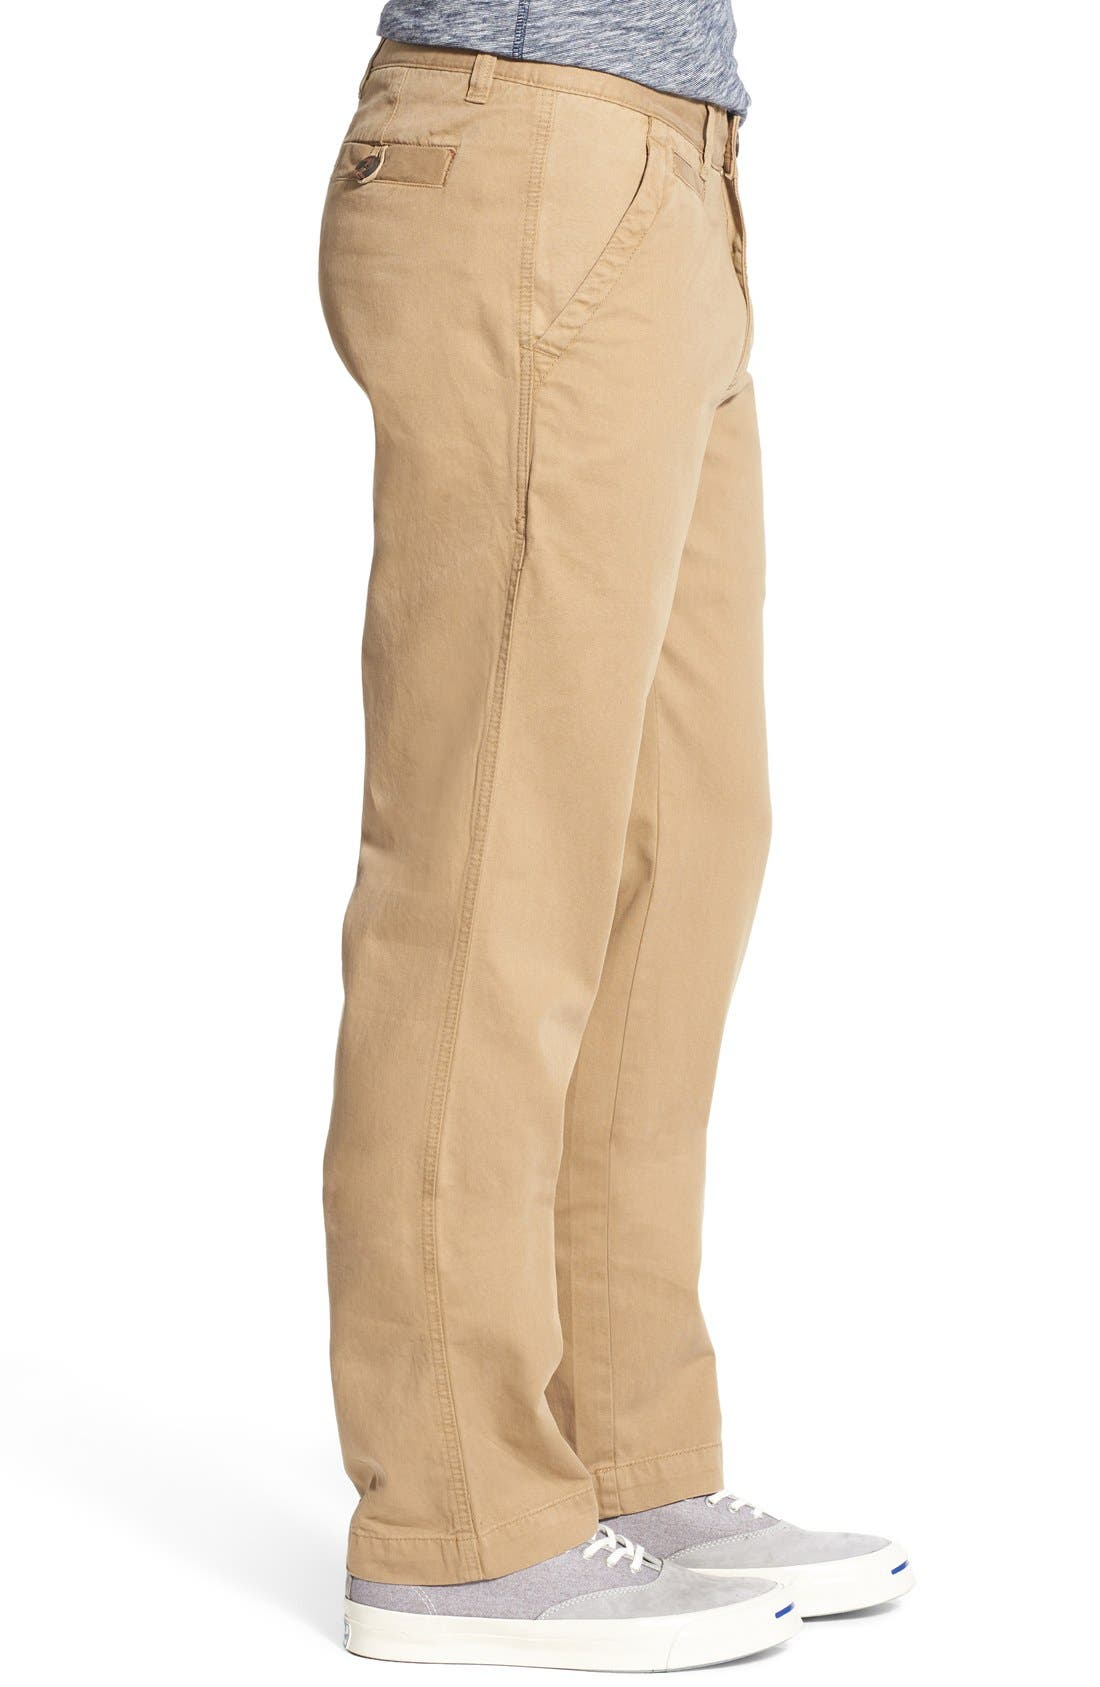 'Sahara' Trim Fit Vintage Washed Twill Chinos,                             Alternate thumbnail 21, color,